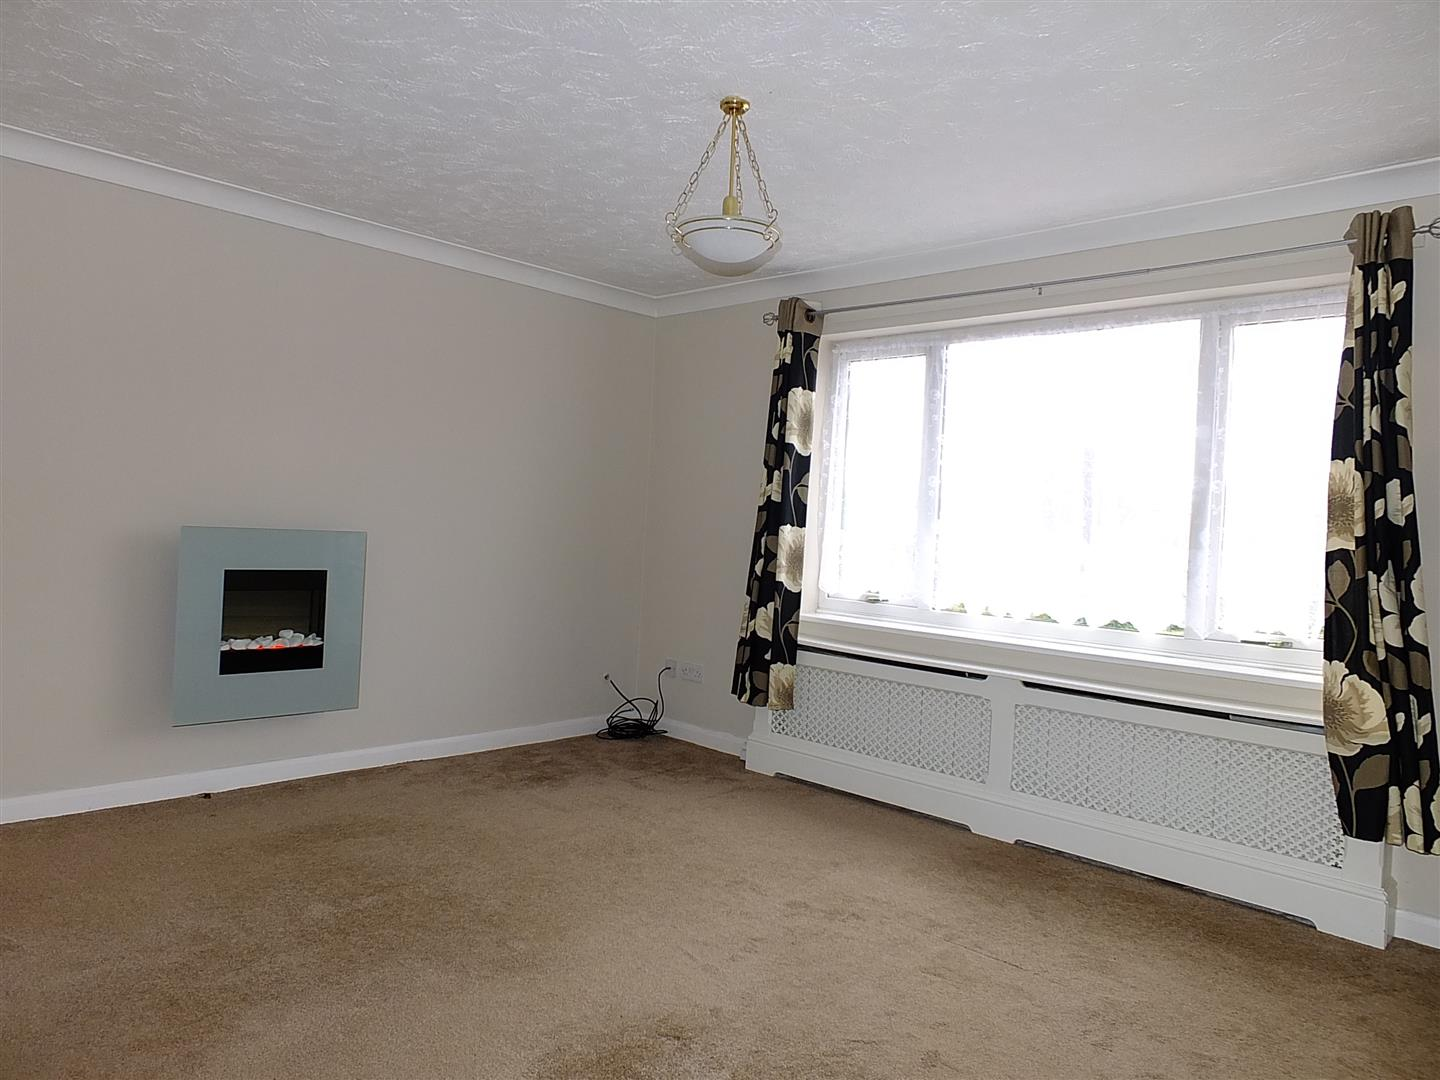 3 bed detached bungalow to rent in Long Sutton Spalding, PE12 9LY  - Property Image 3